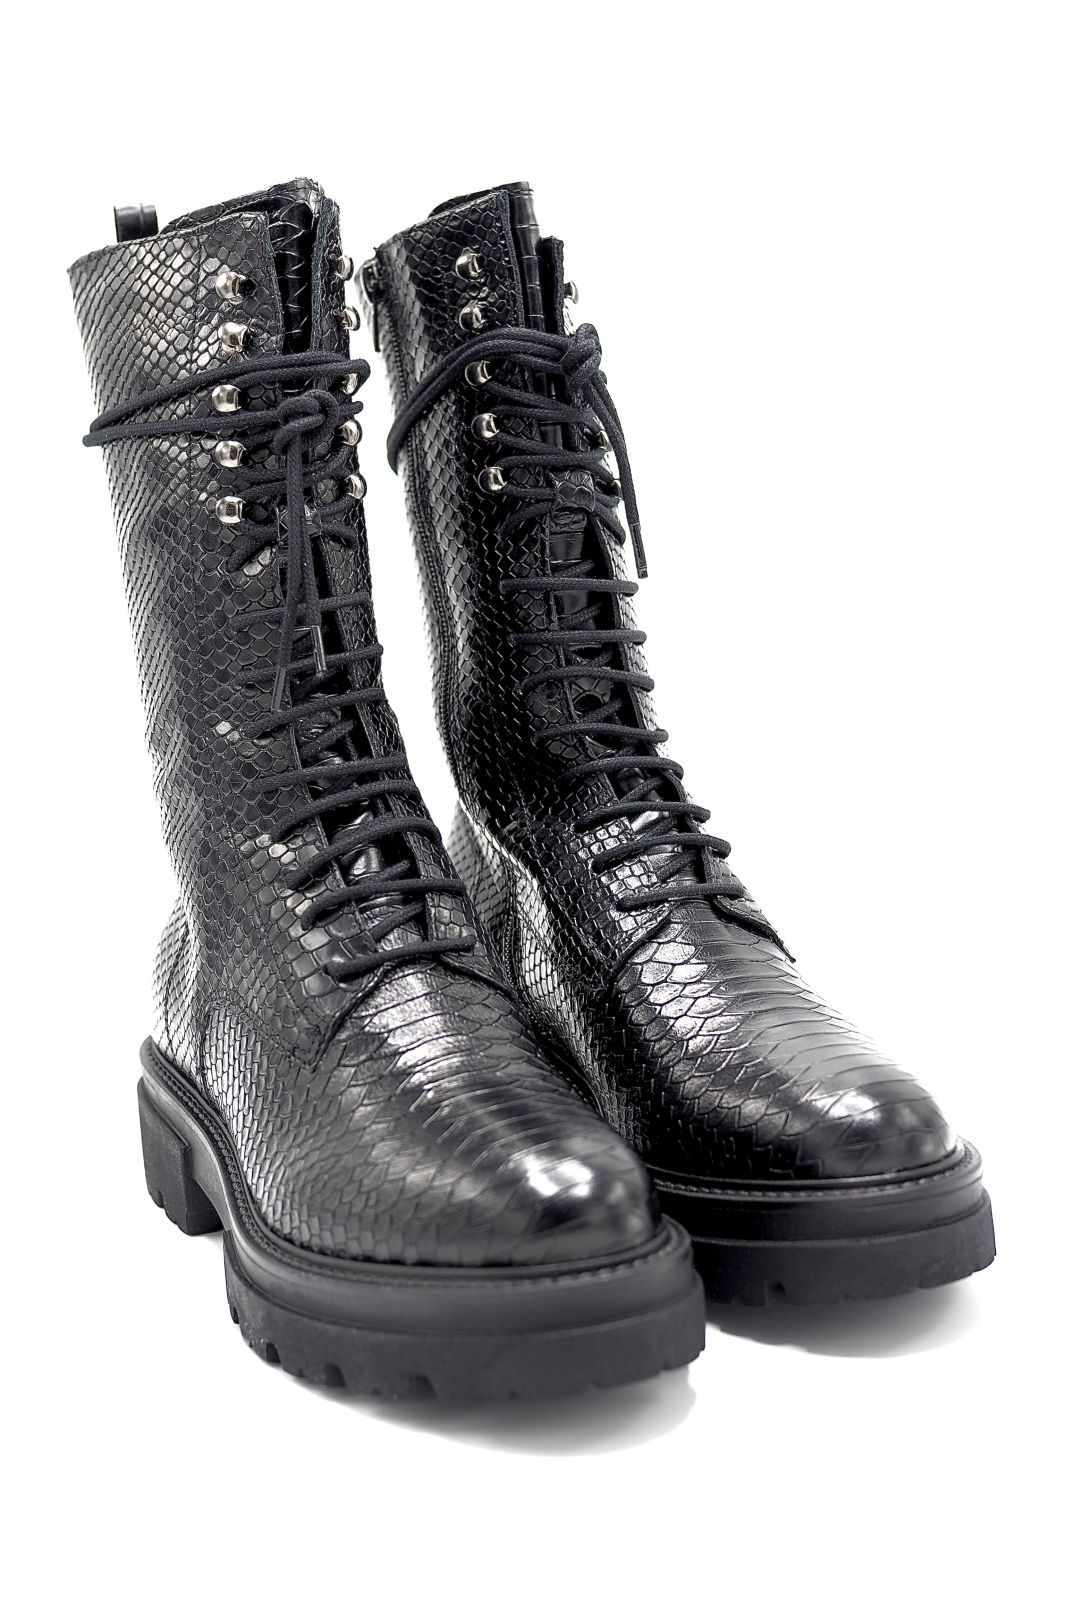 Sweet Lemon boots Noir femmes (SWL-Biker haute python noir - DOLYAN Biker haute noir) - Marine | Much more than shoes